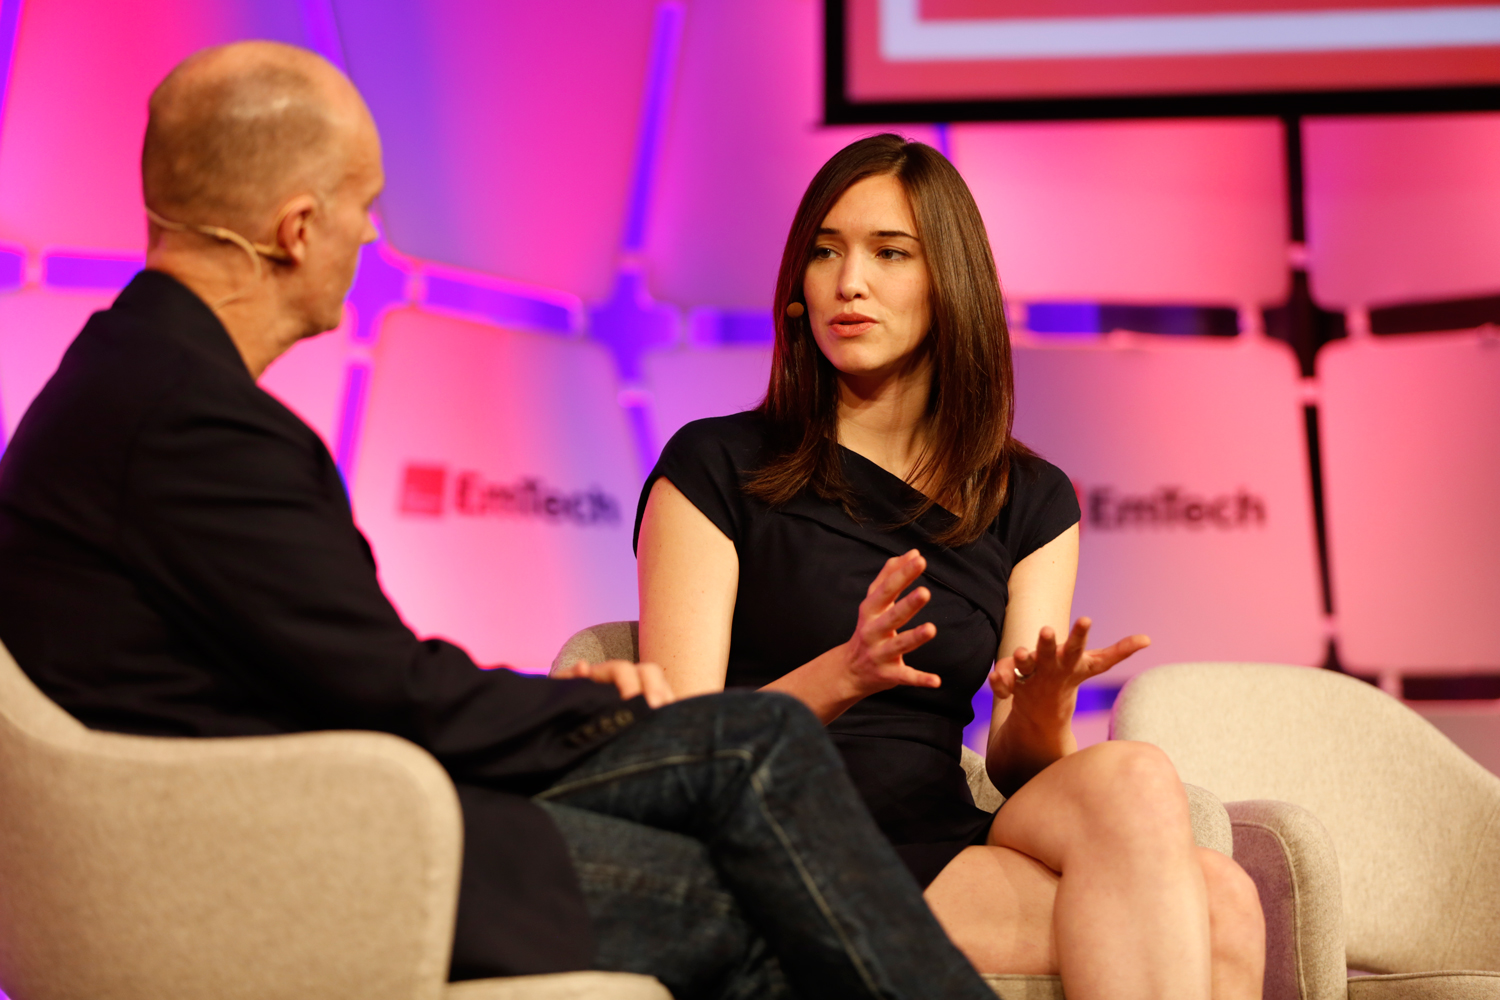 Rachel Haot, right, speaks with MIT Technology Review's editor in chief, Jason Pontin.